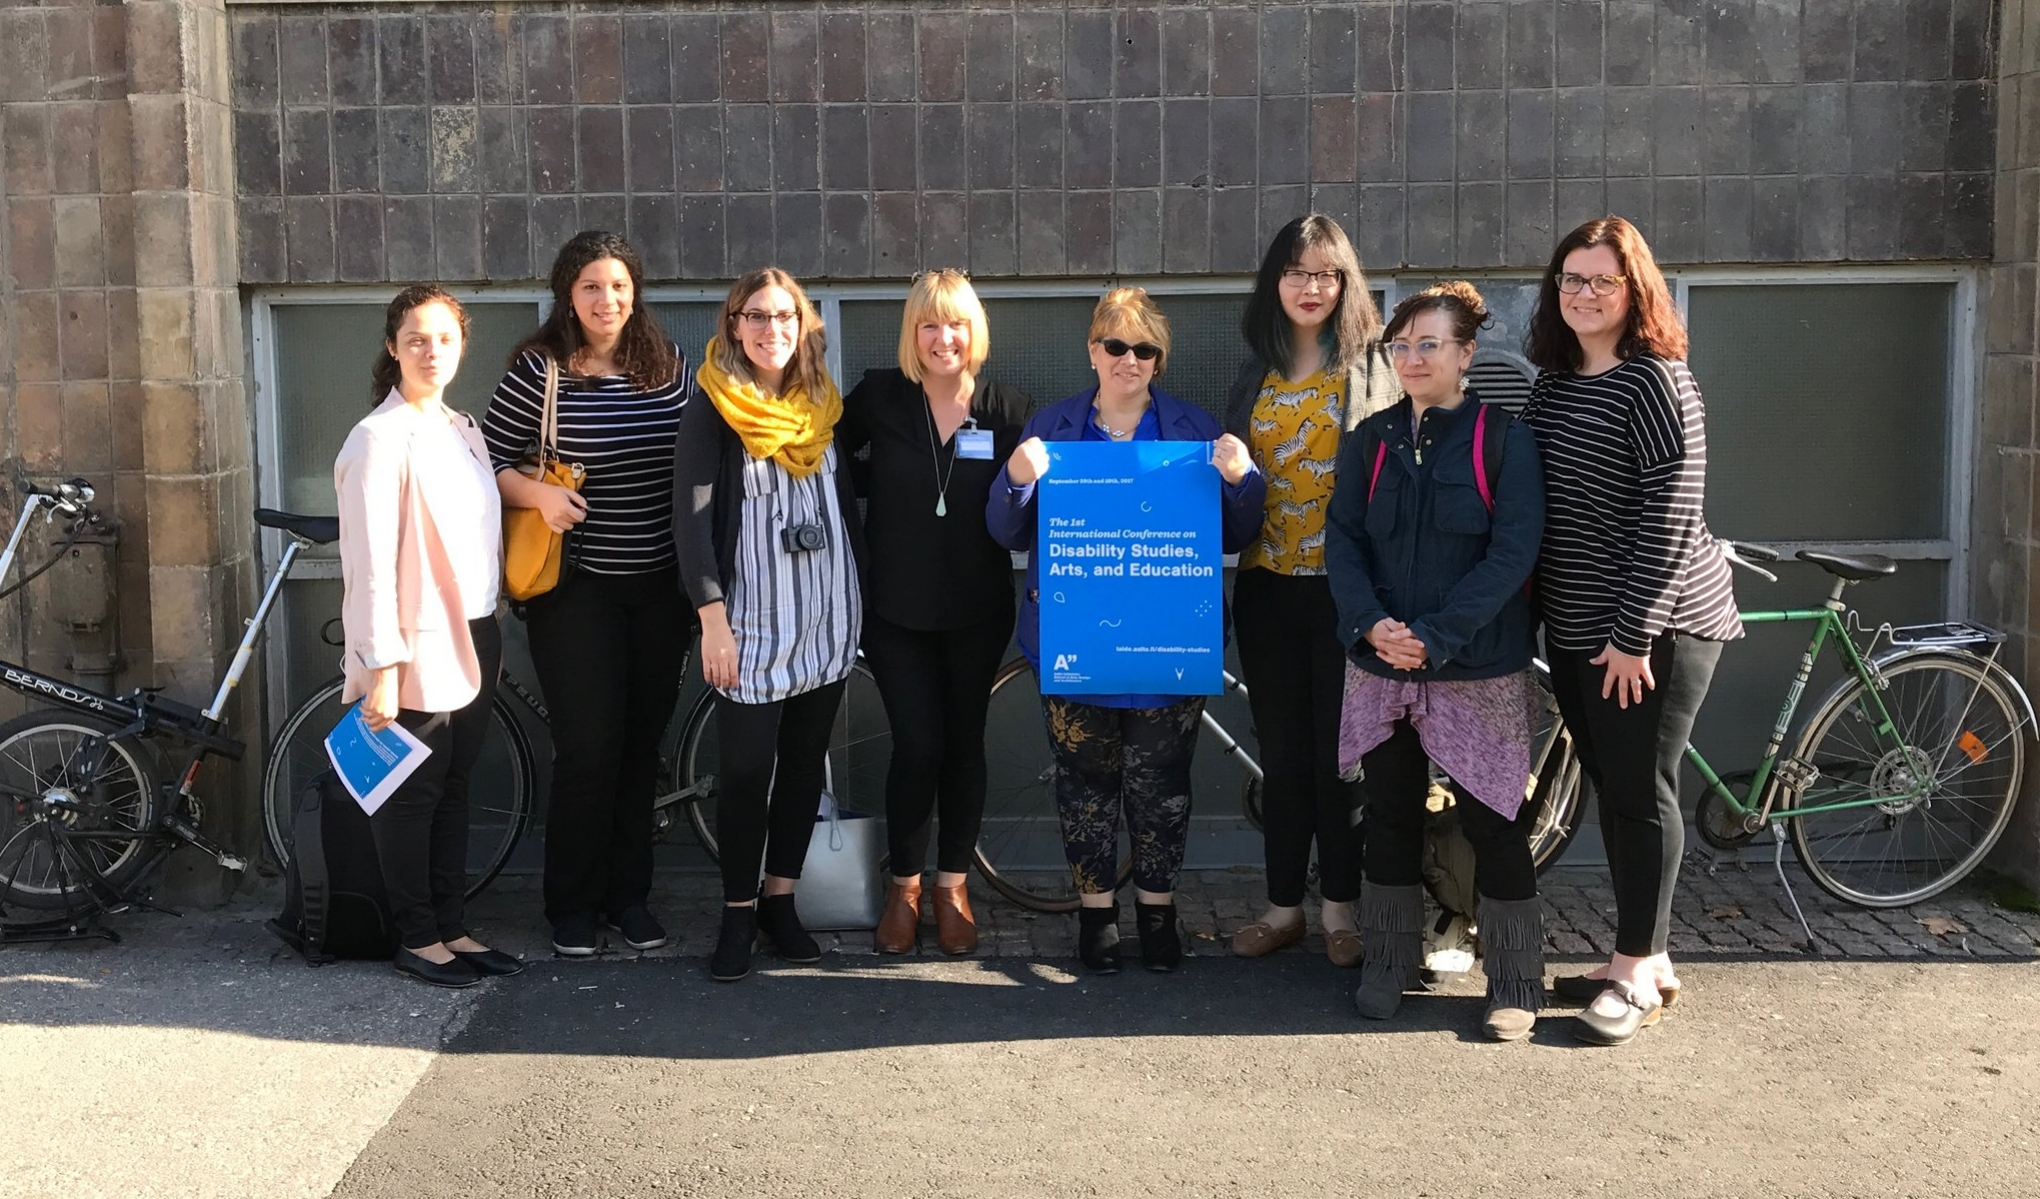 Eight members of Moore College of Art & Design Holding a blue poster from the 2017 First International DSAE Conference in Helsinki, Finland.